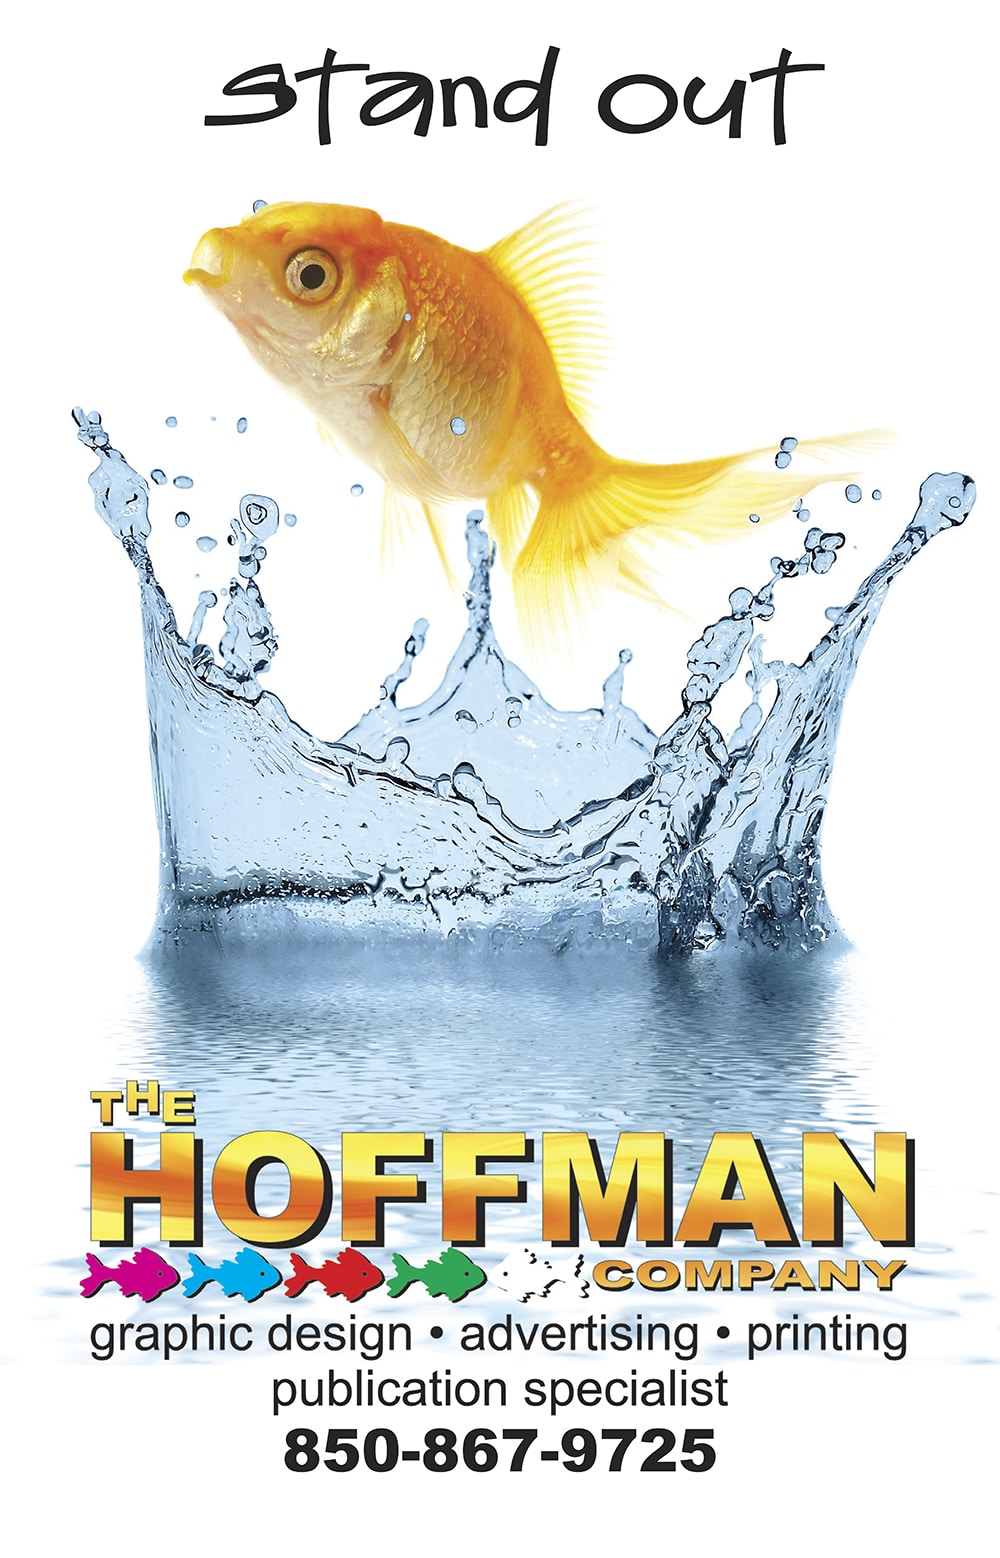 The Hoffman Company